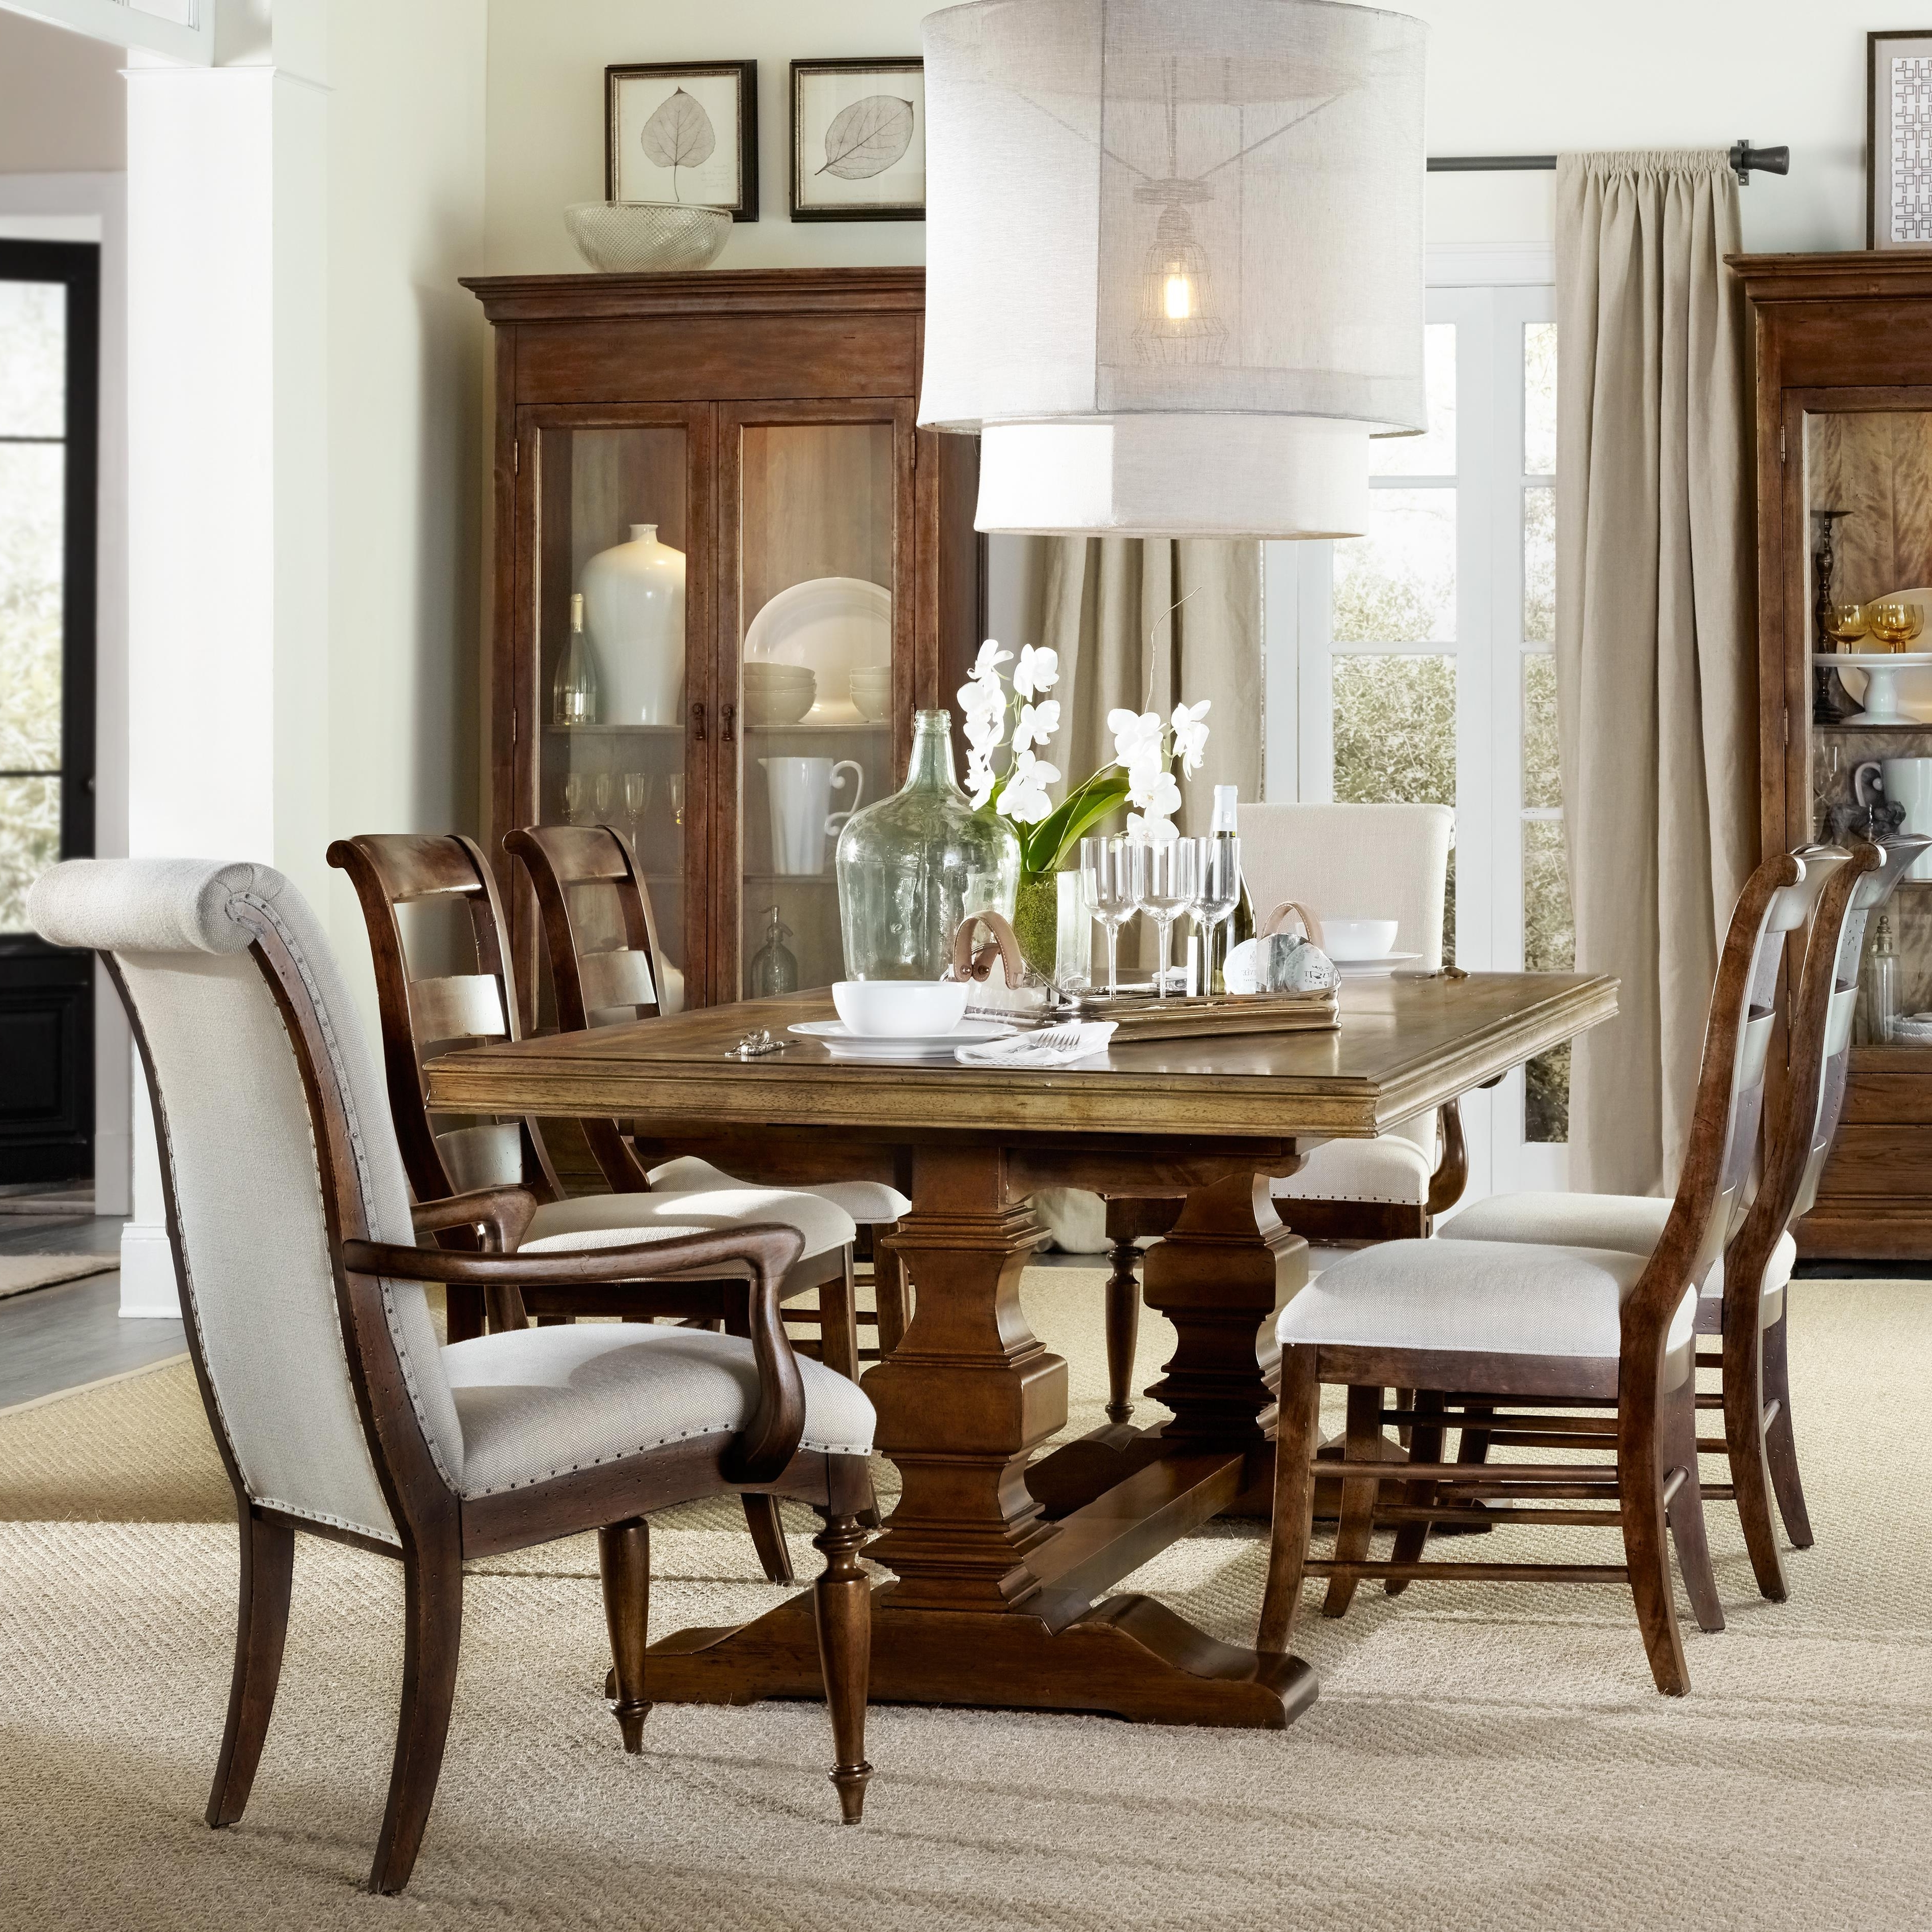 Well Liked Dining Sets Within Hooker Furniture Archivist 7 Piece Dining Set With Trestle Table (View 25 of 25)